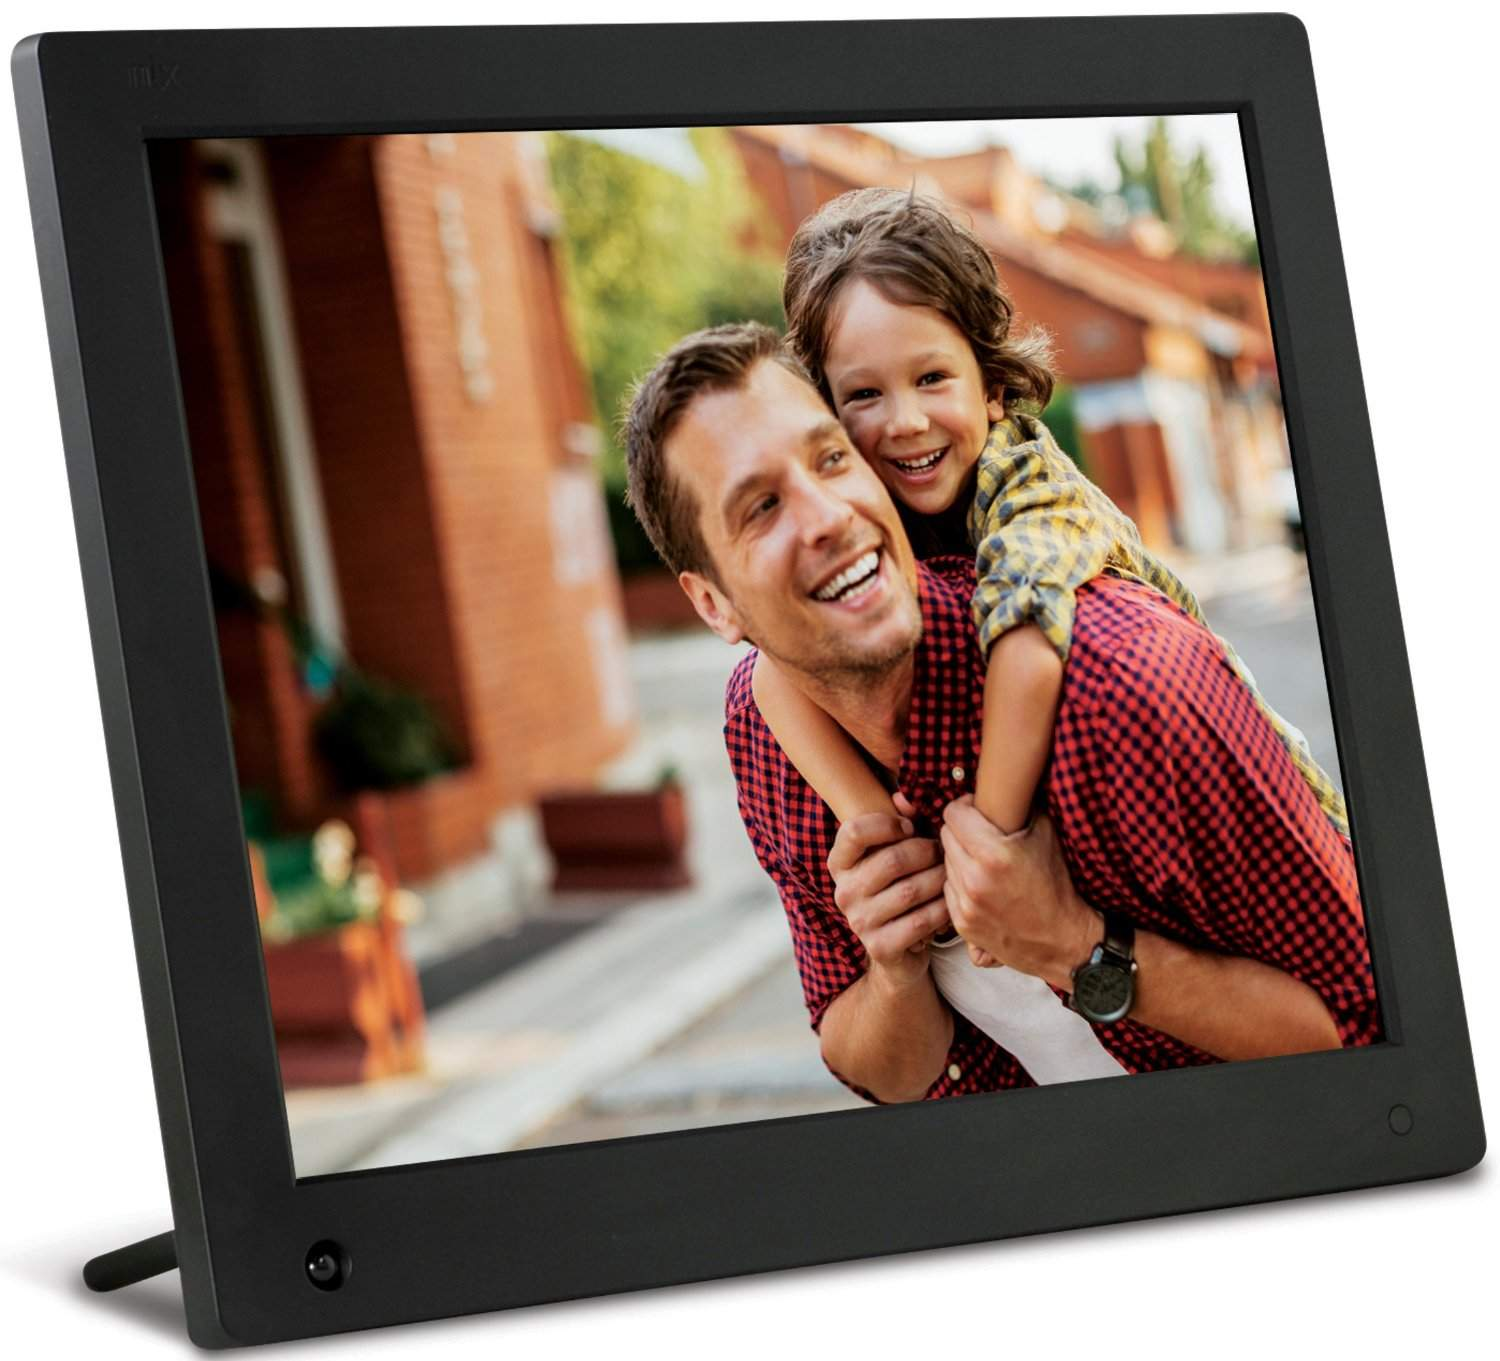 nix advance digital frame 12 inch